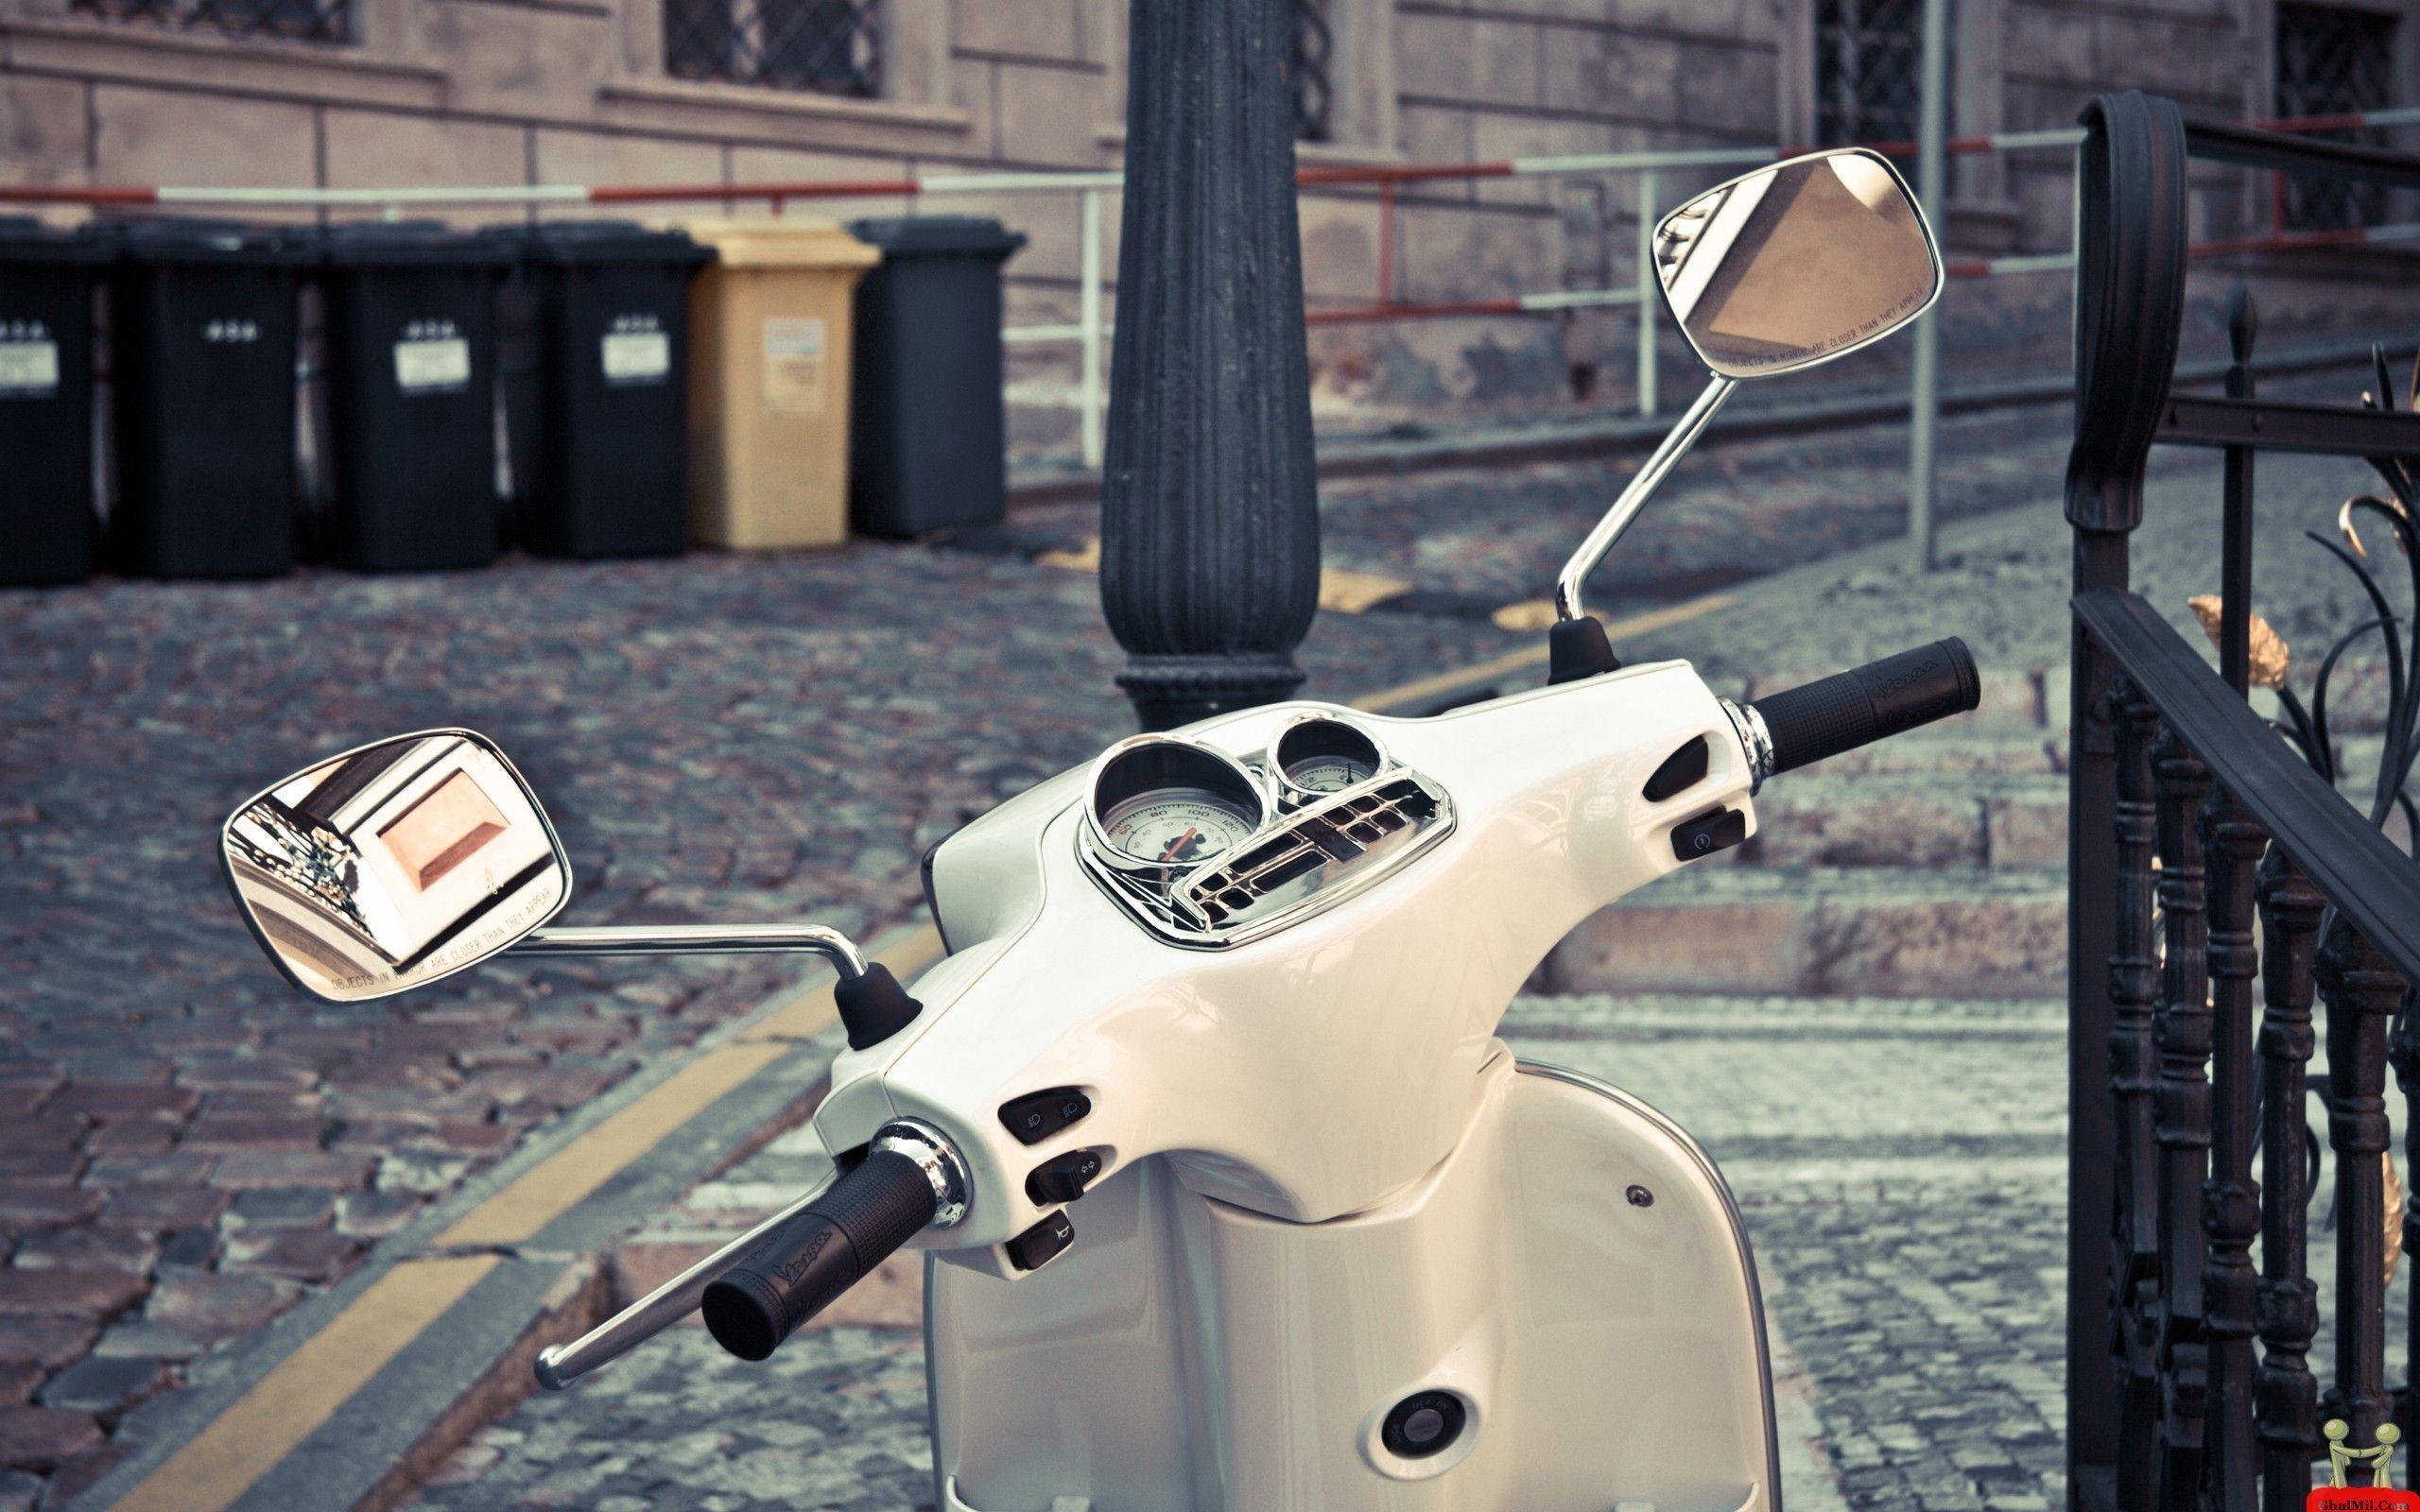 Related Pictures Italian Vespa Hd Wallpaper Car Pictures